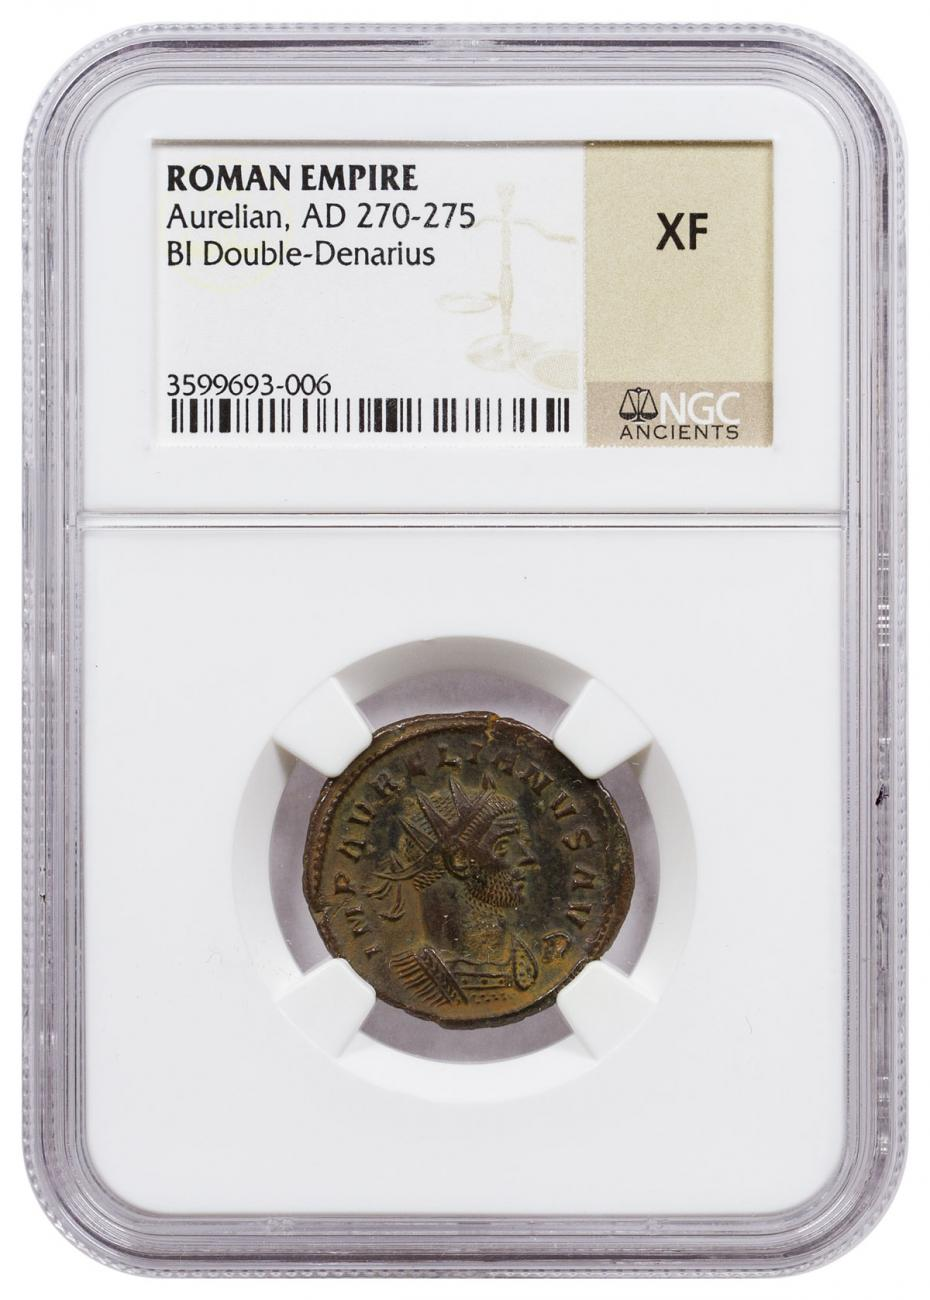 Roman Empire, Billon Double Denarius of Aurelian (AD 270-275) NGC XF